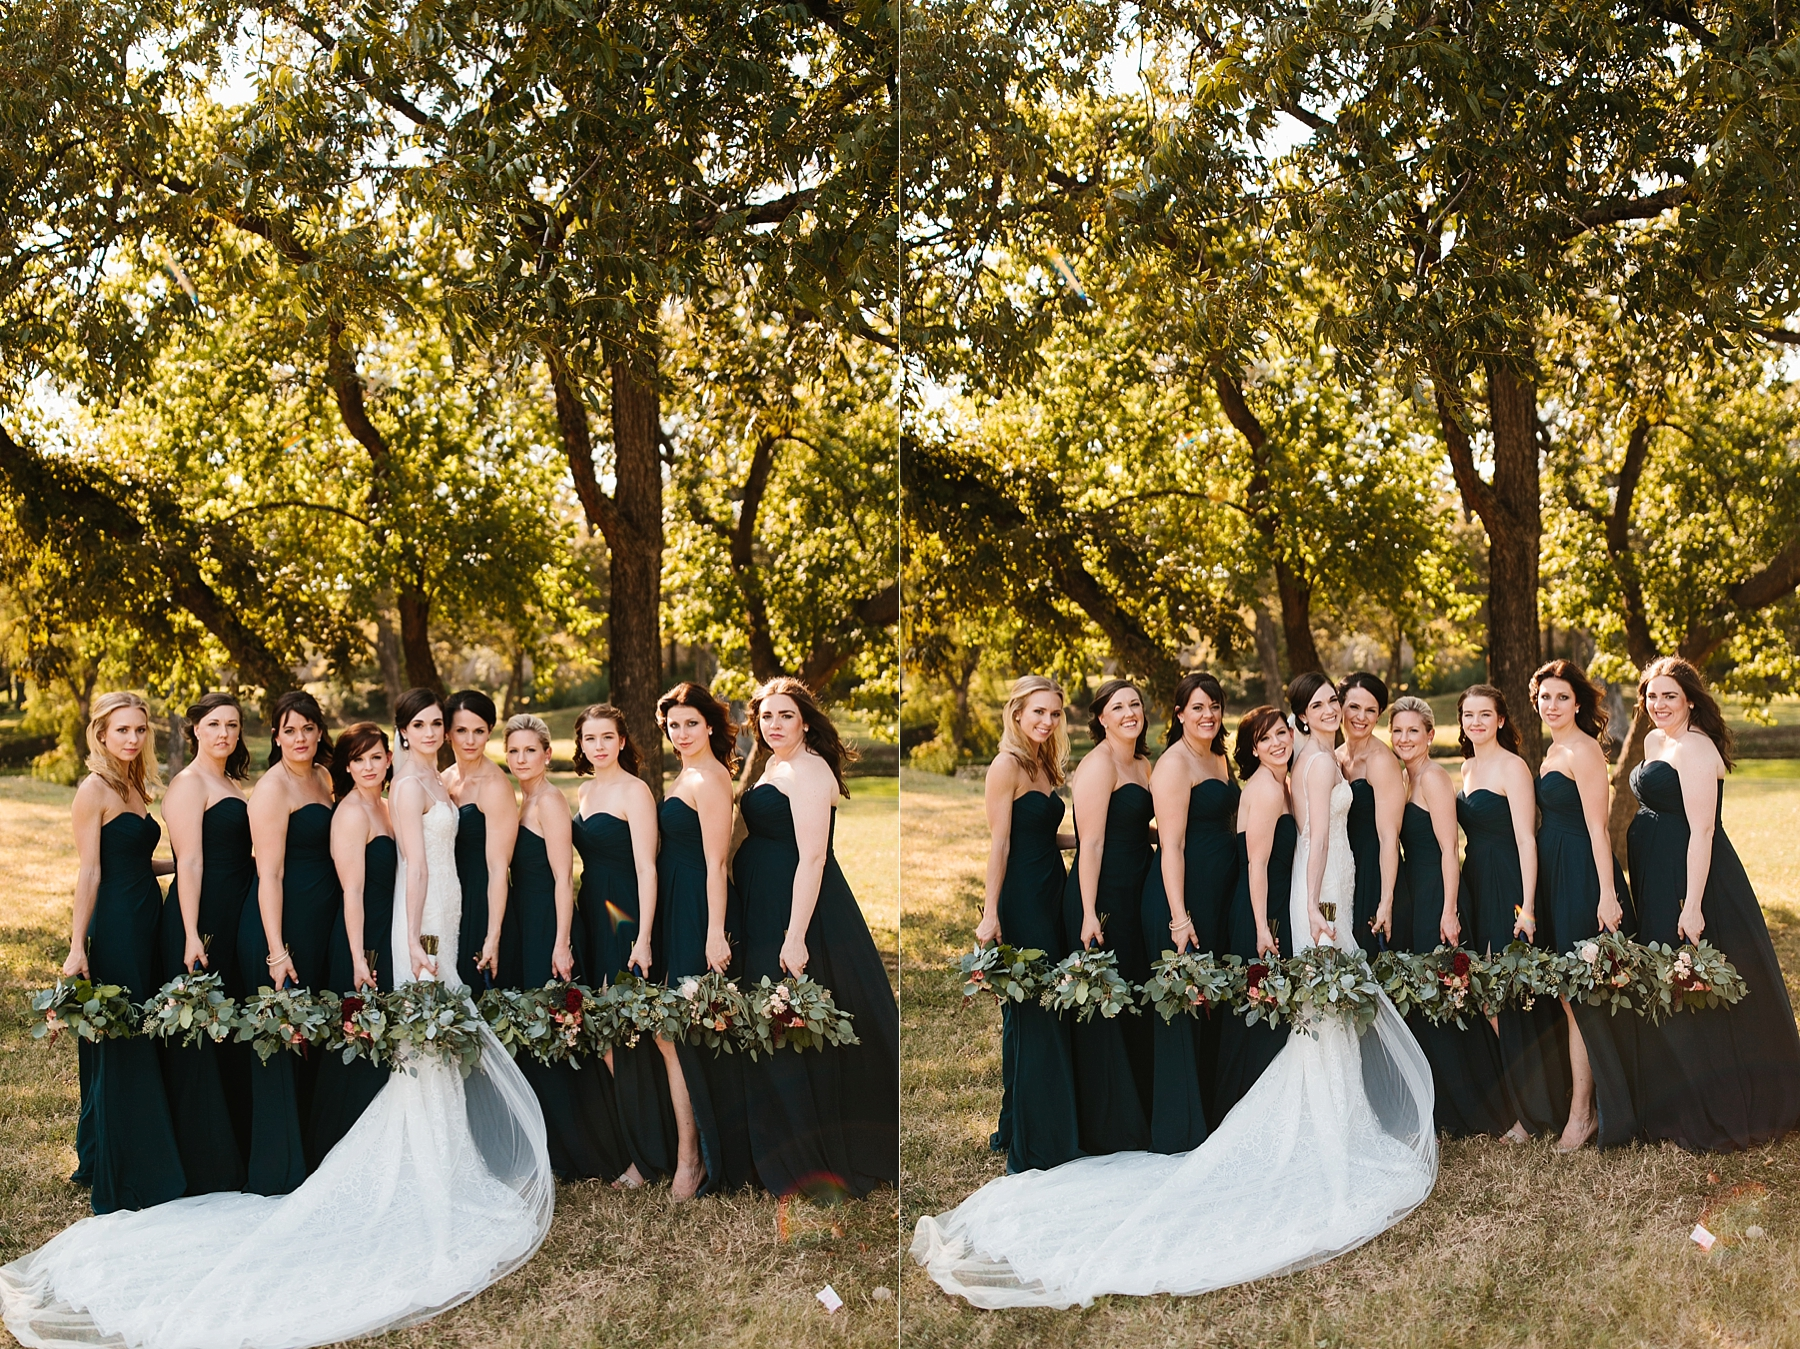 Emily + Caleb _ an elegant, intentional, industrial style wedding with navy + gold accents at 6500 in Dallas, TX by North Texas Wedding Photographer Rachel Meagan Photography _ 064